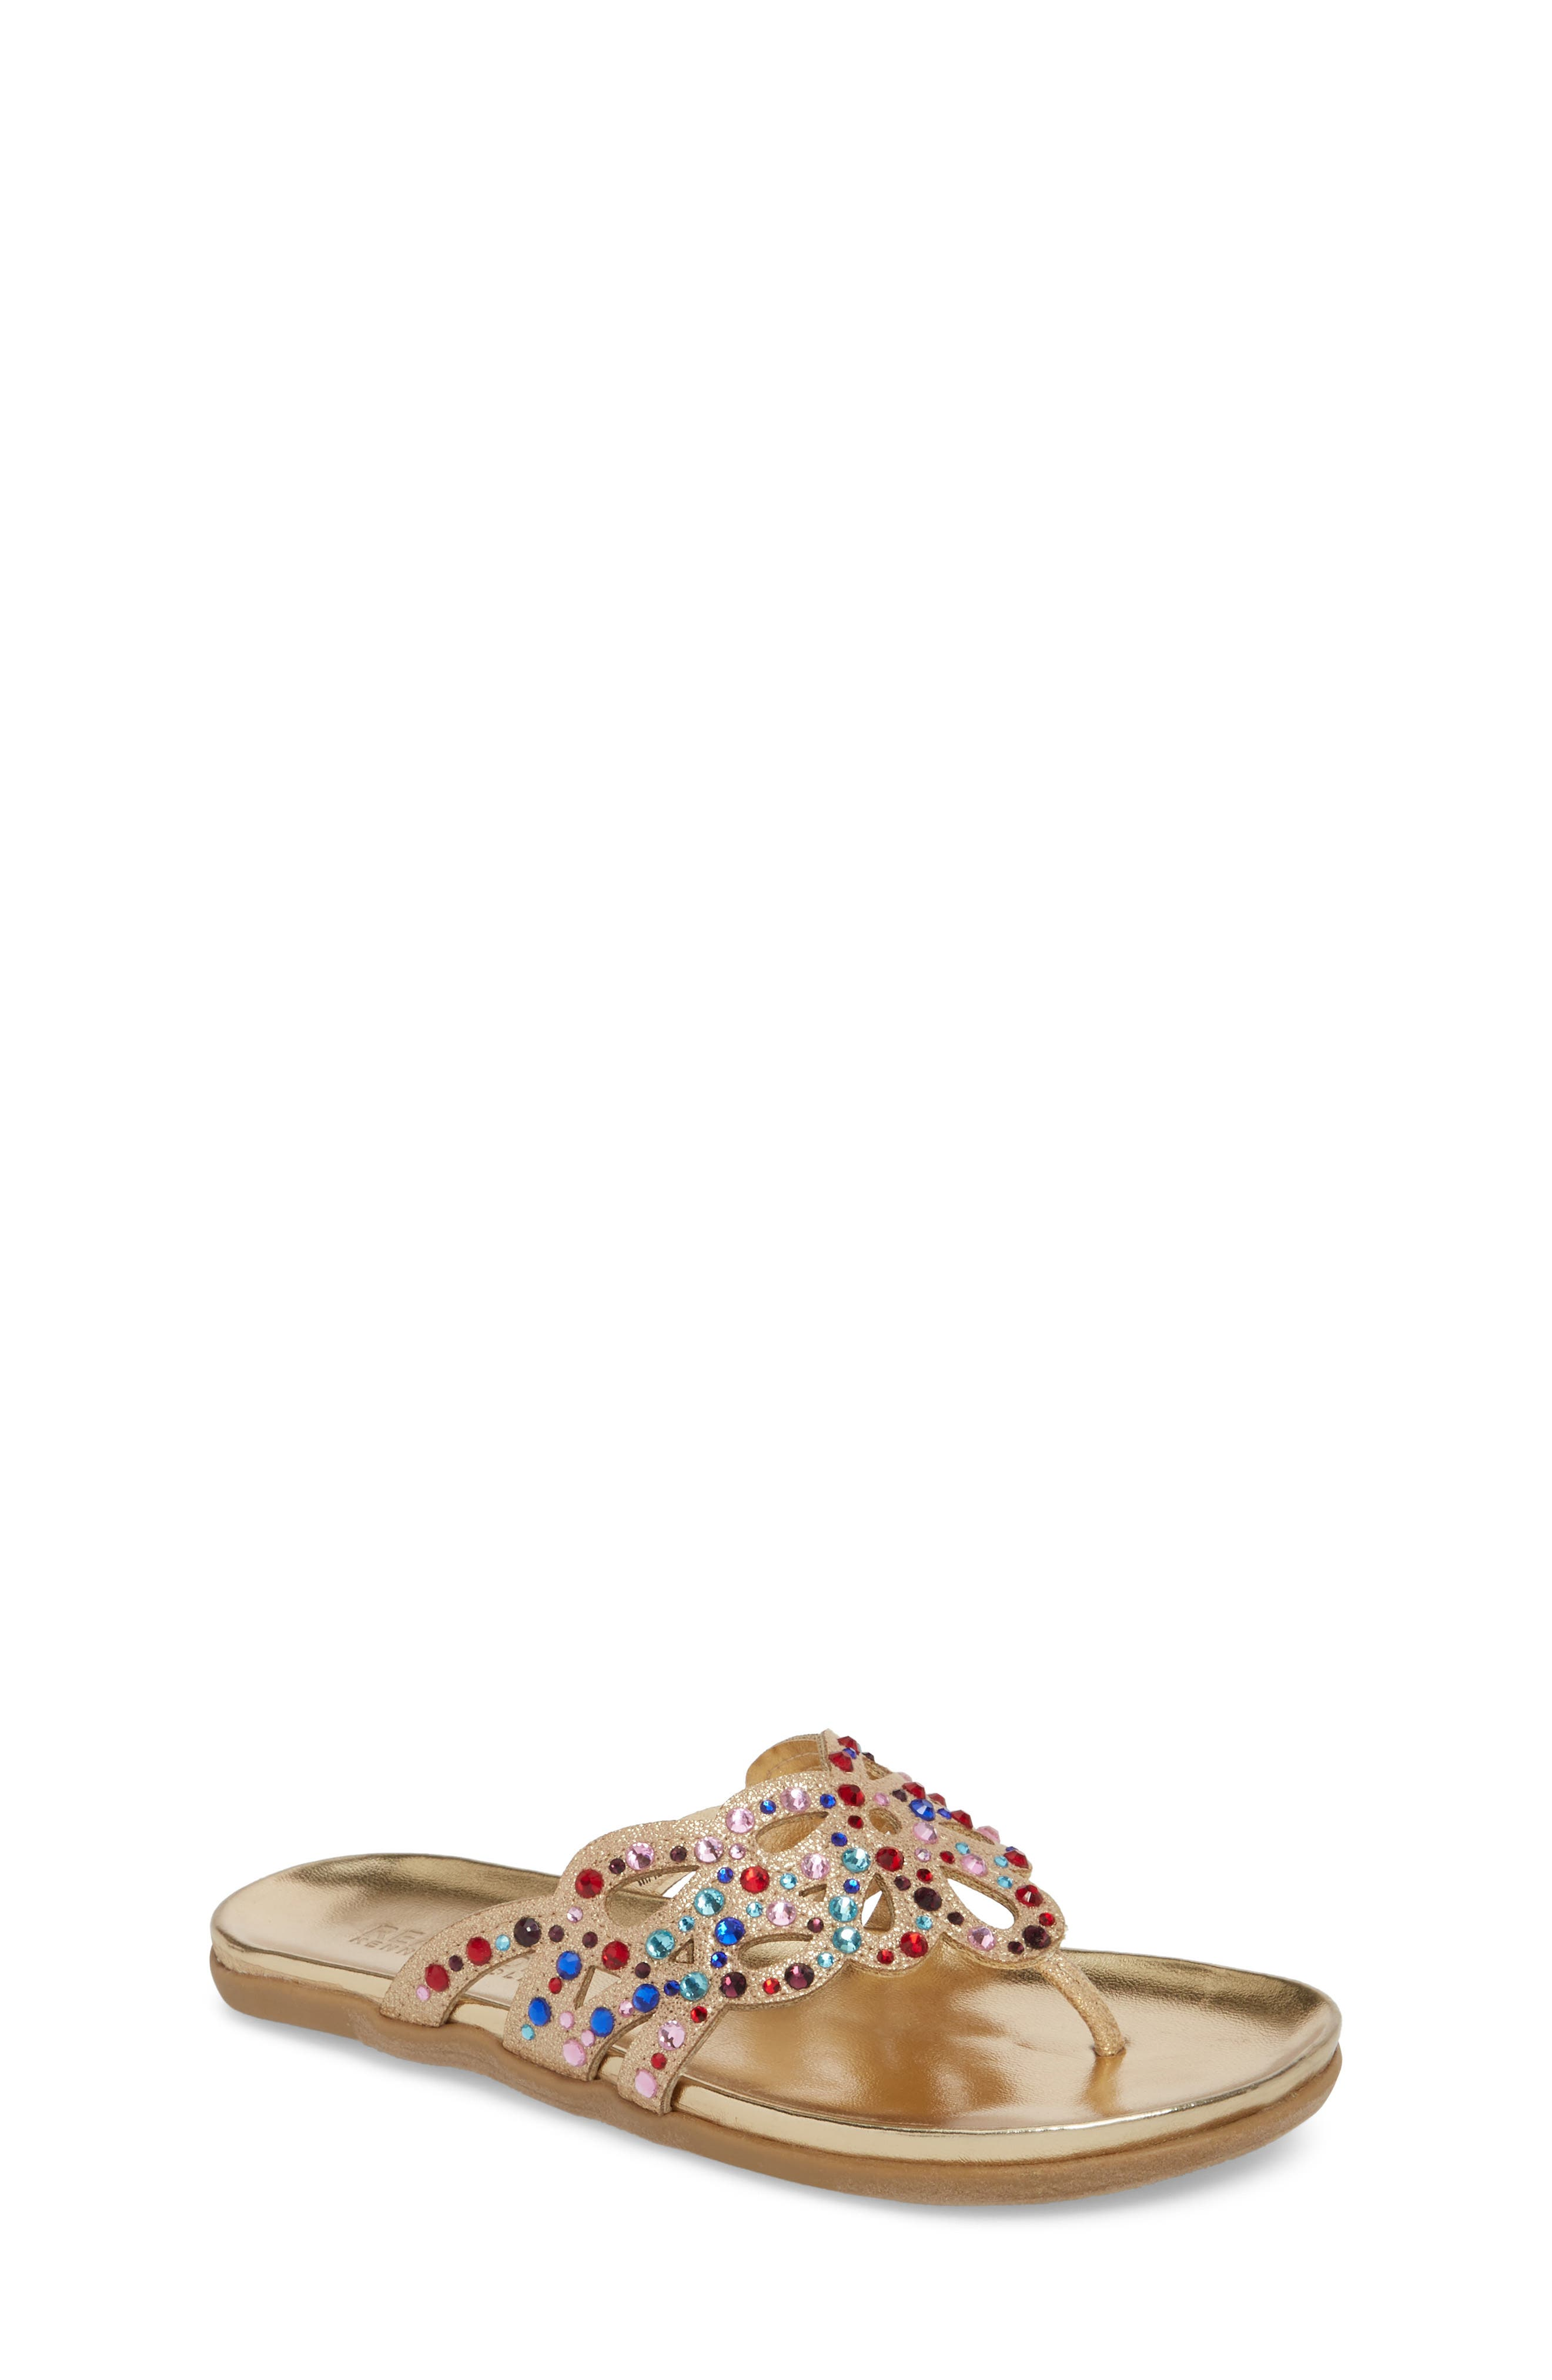 Kenneth Cole New York Flutter Metallic Crystal Thong Sandal,                             Main thumbnail 1, color,                             Gold Multi